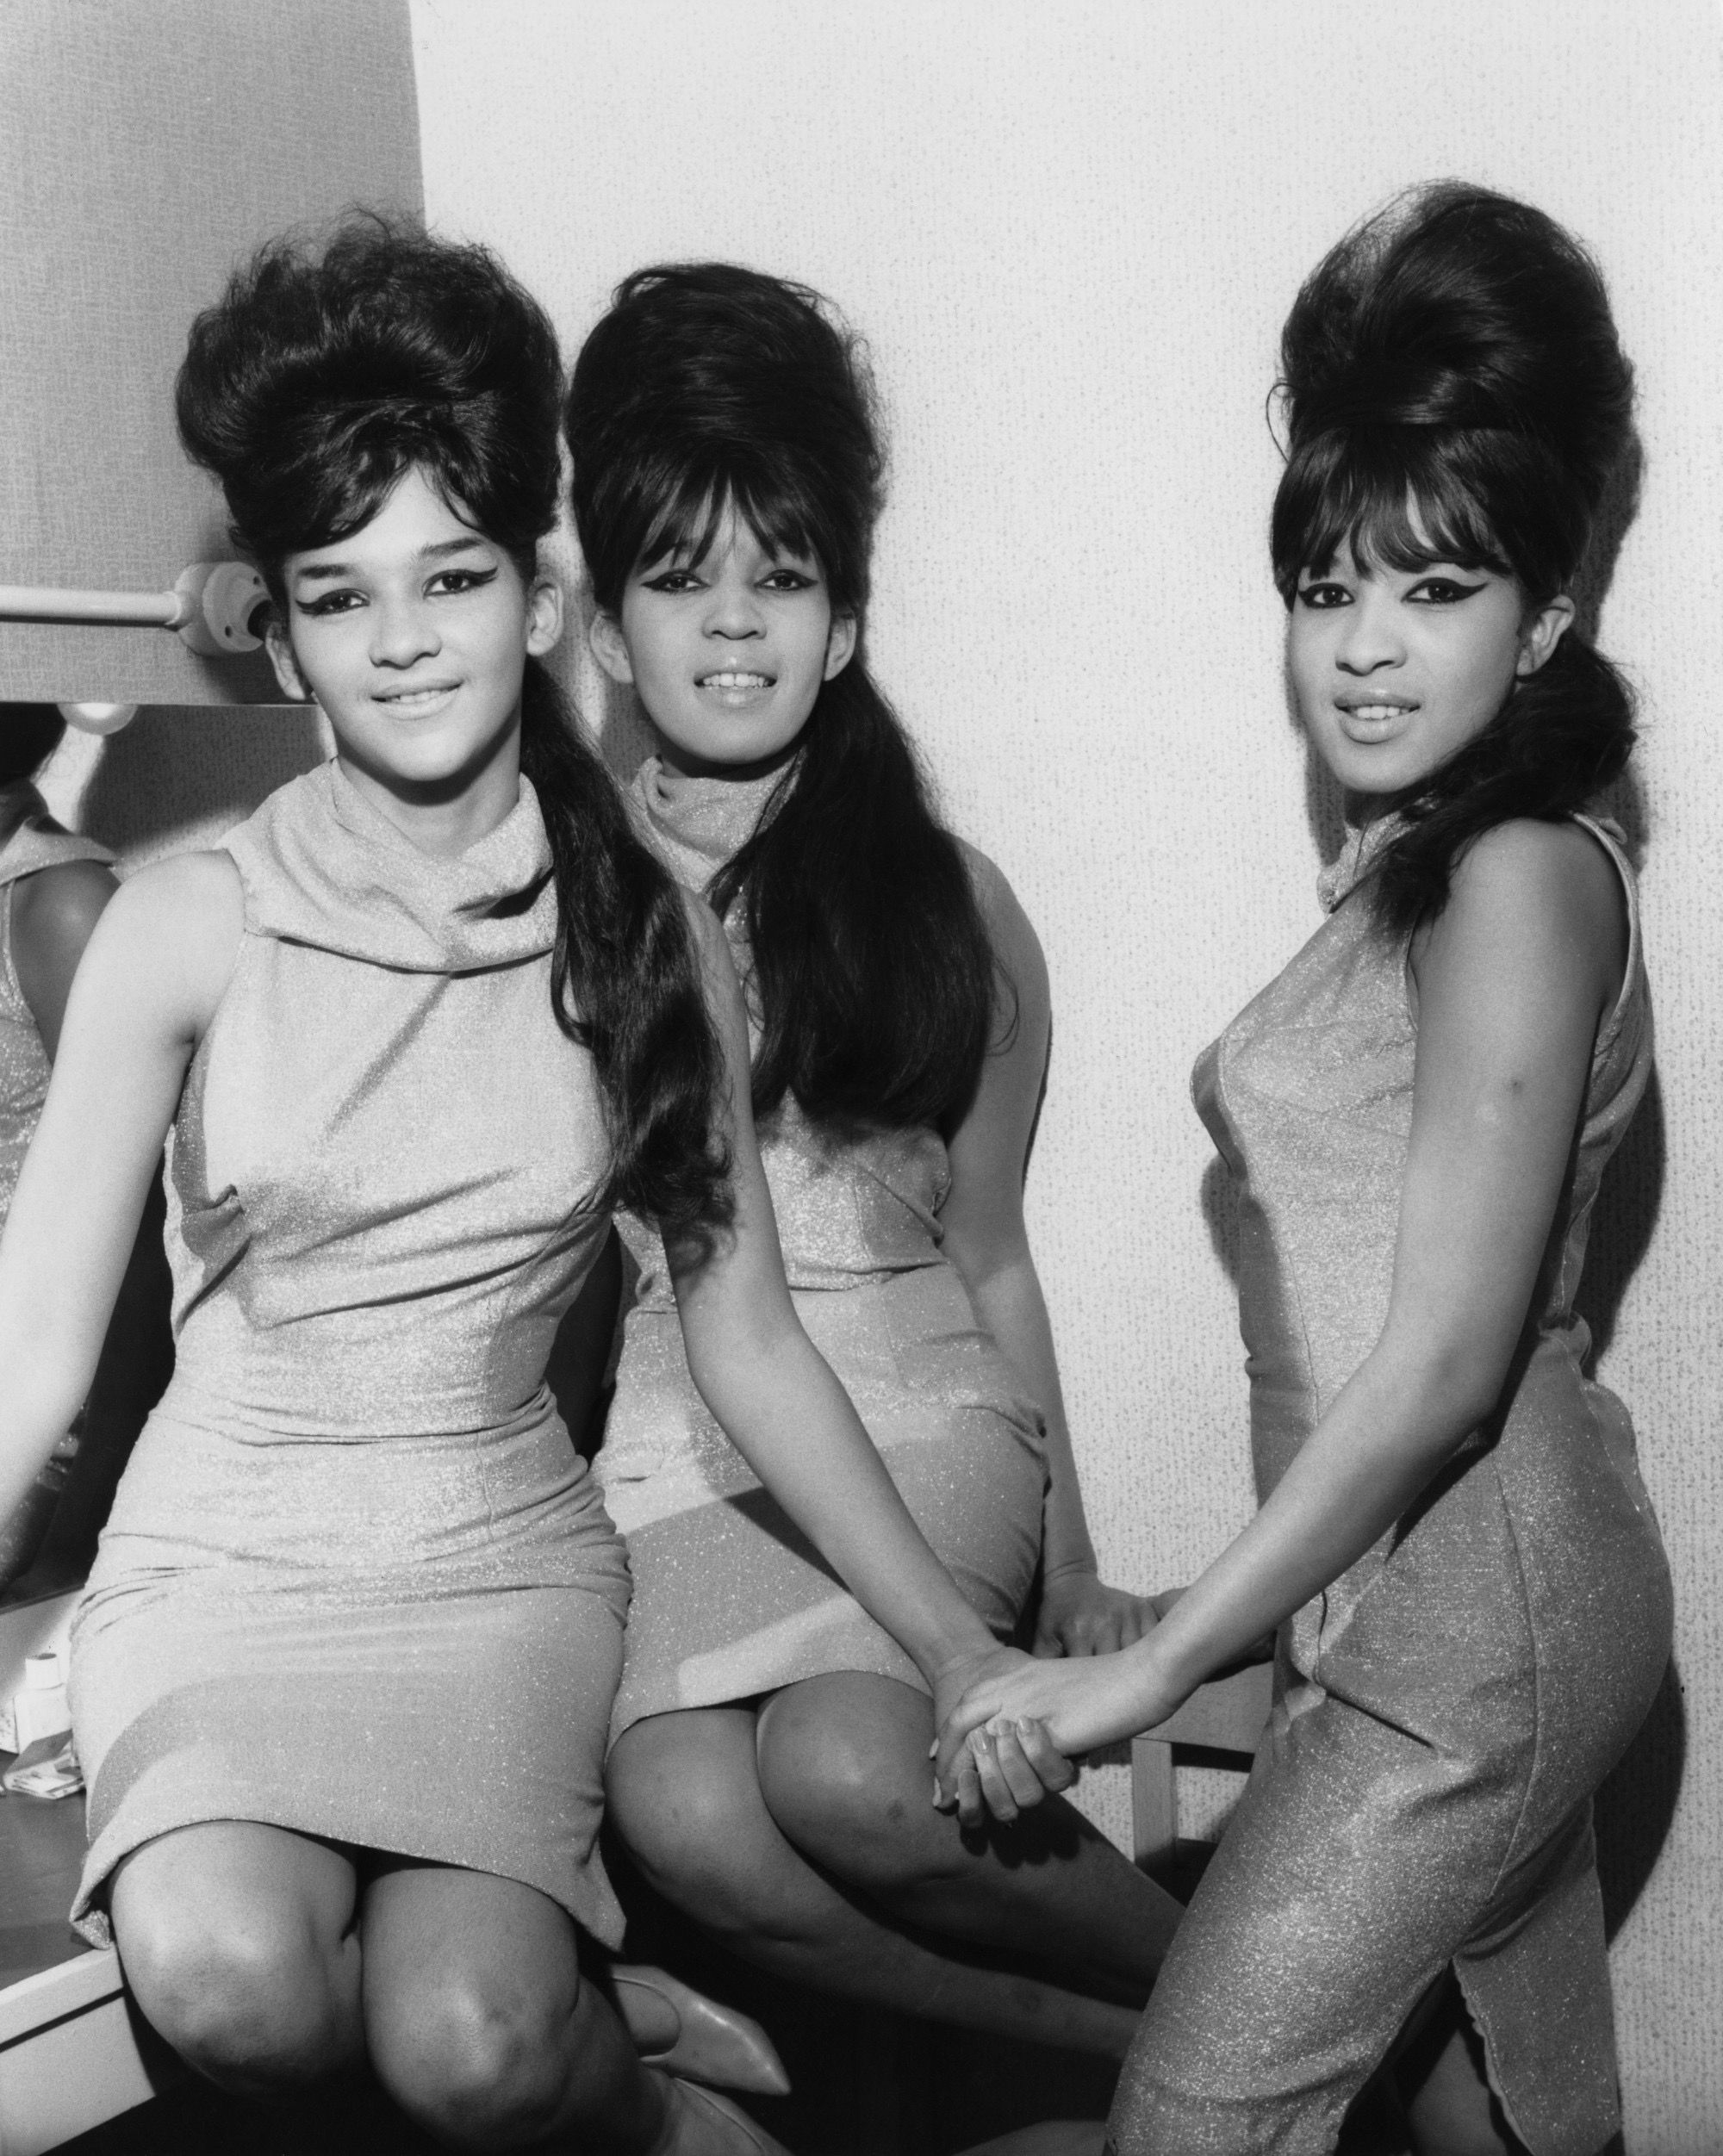 Pin by Arthur Schlaman on History | The ronettes, Beehive ...